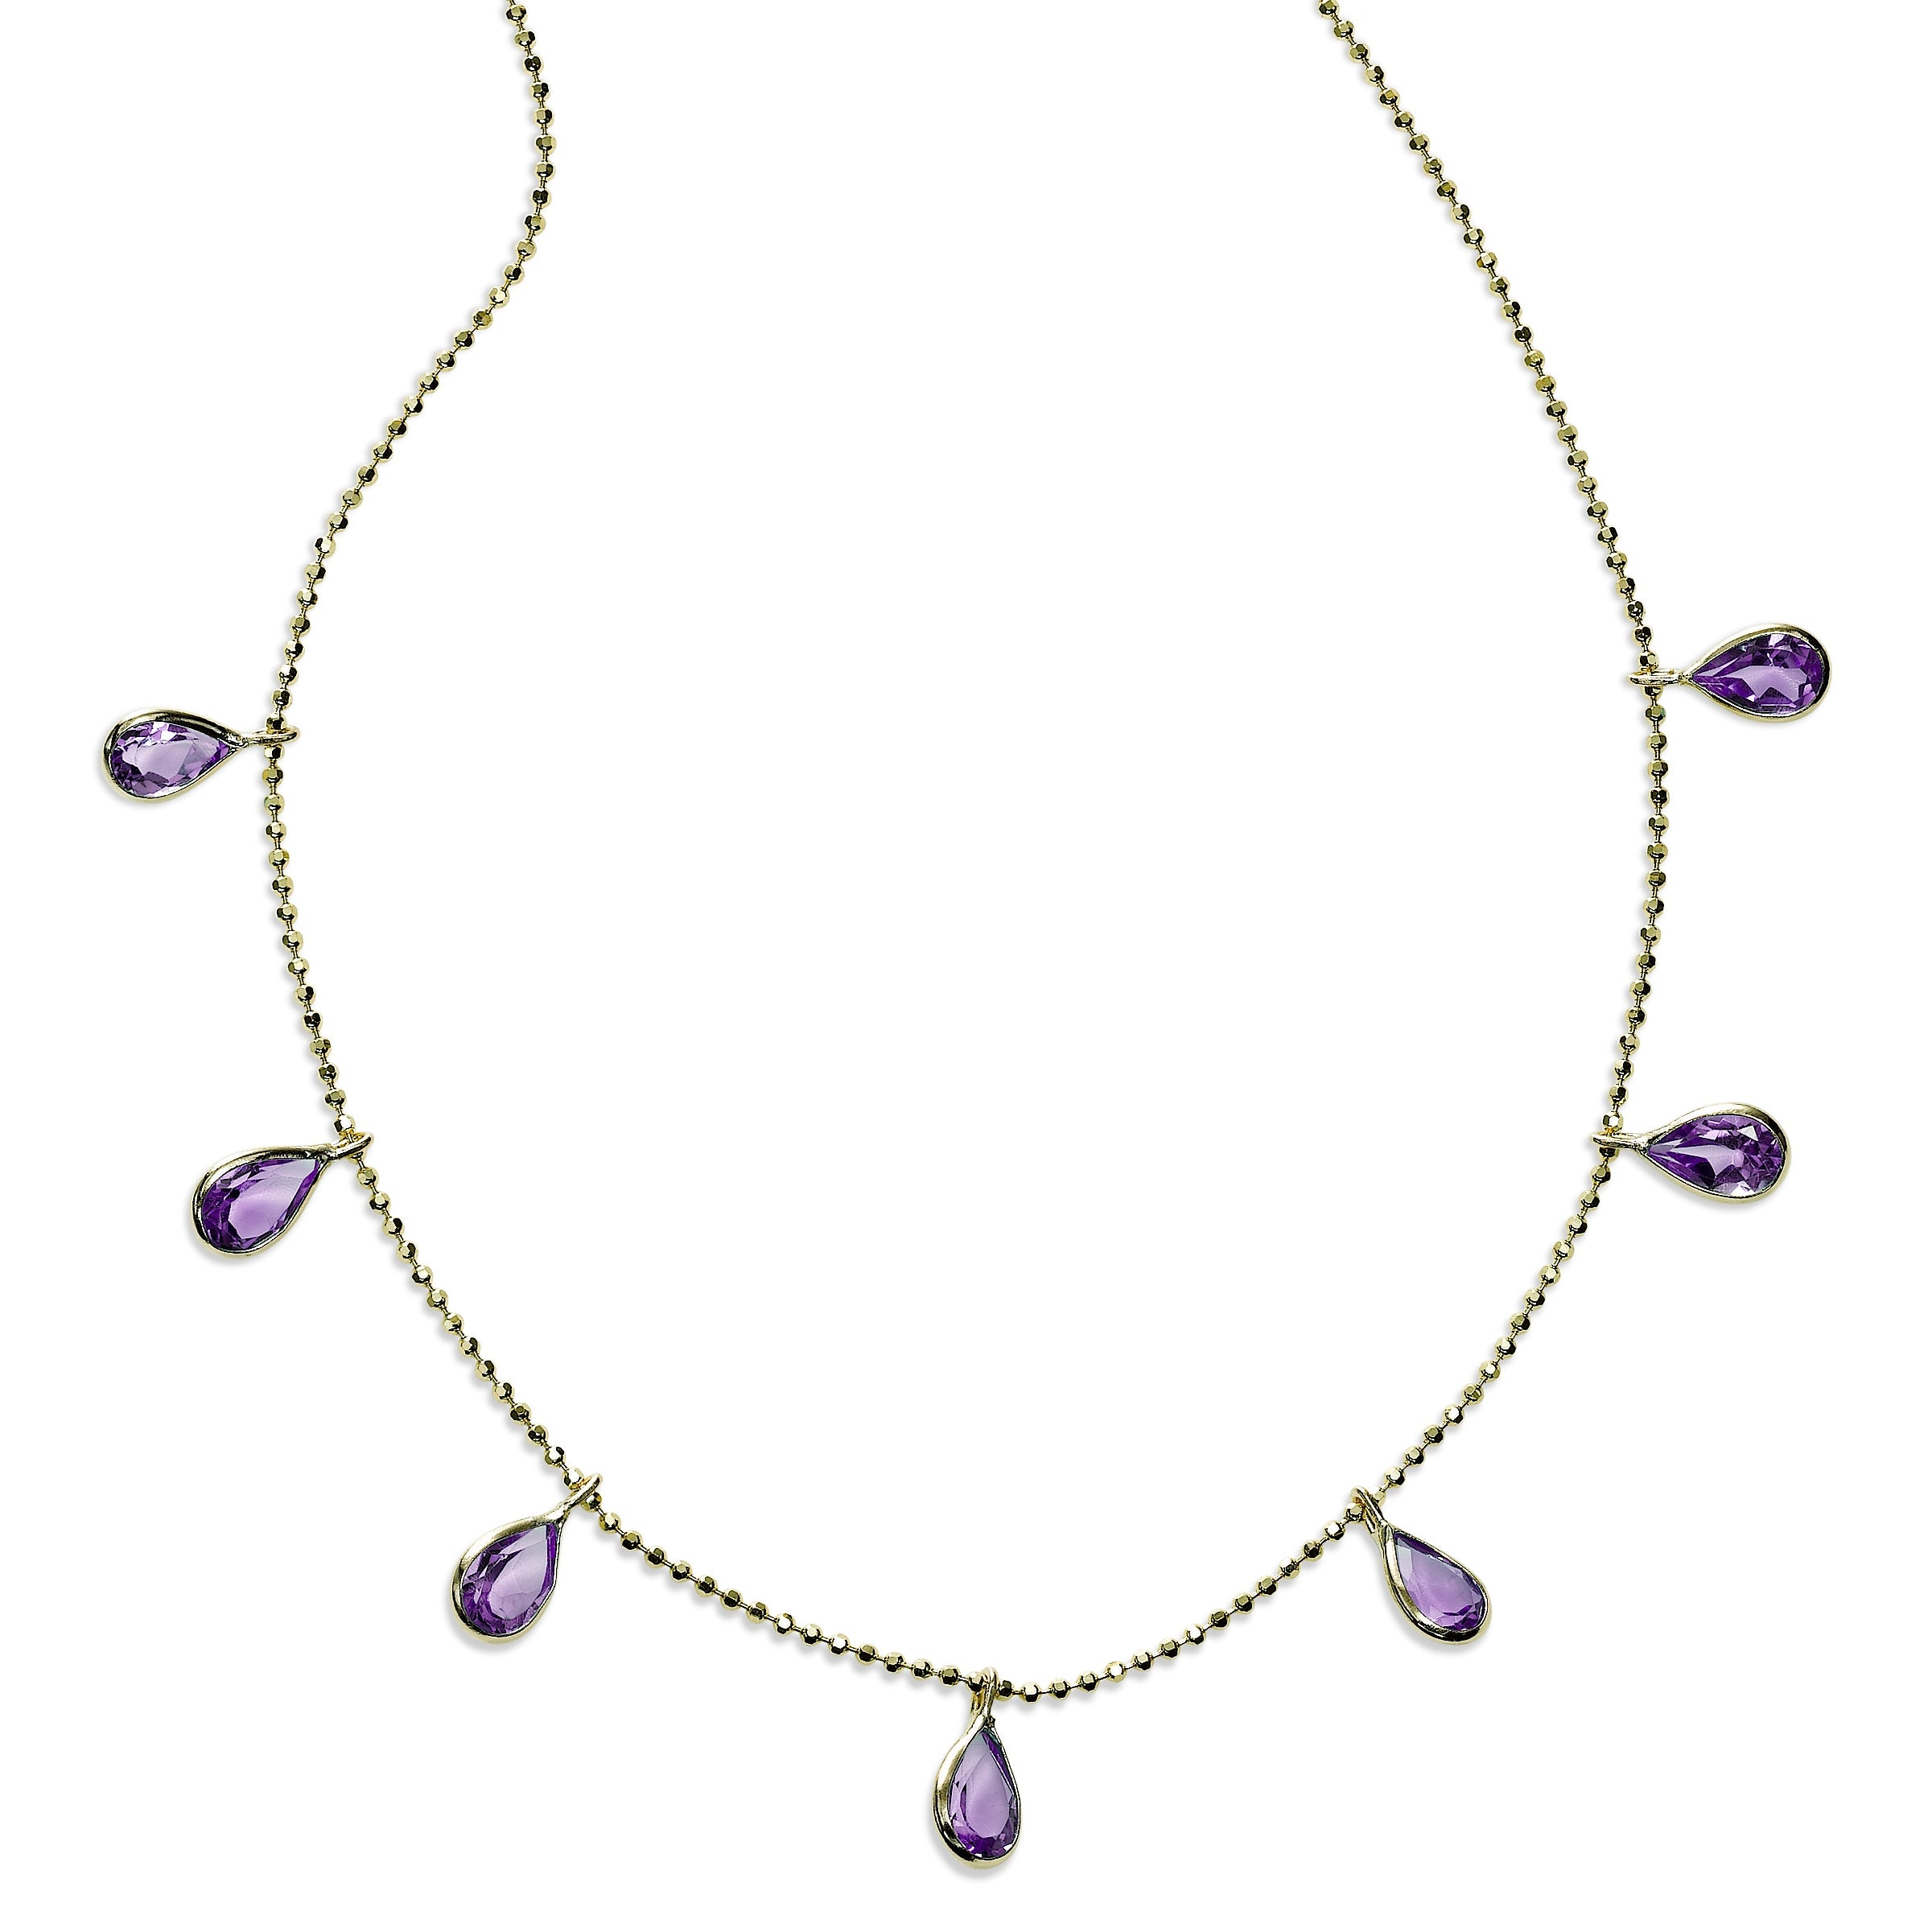 Pear Shaped Amethyst Drop Necklace, 18 Inches, 14K Yellow Gold